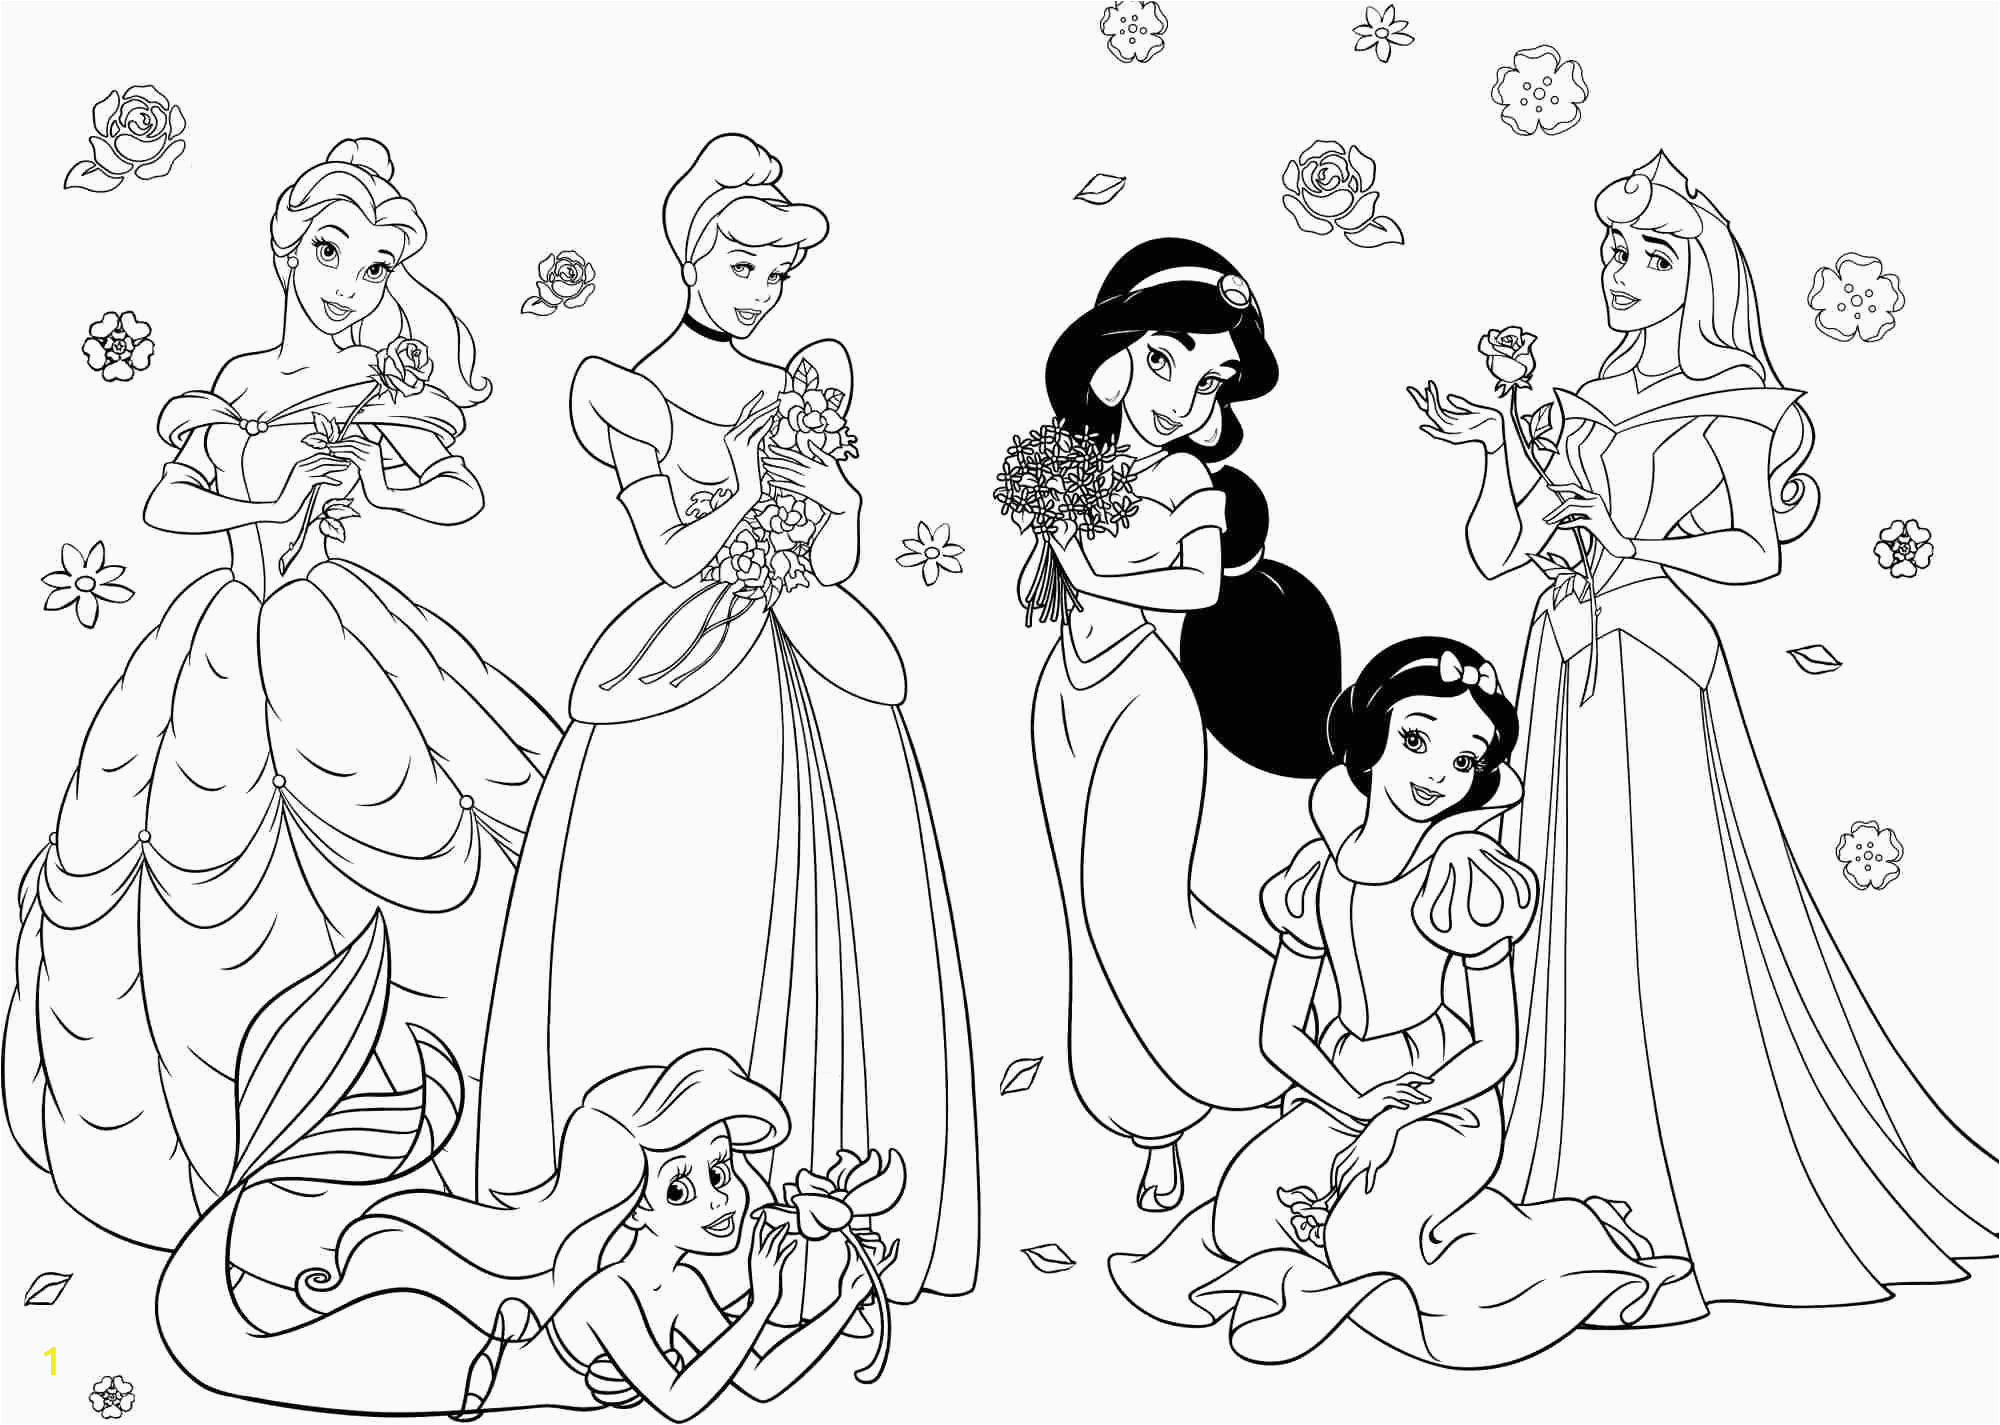 Coloring Pages Disney Princesses together Tree Girl Coloring In 2020 with Images